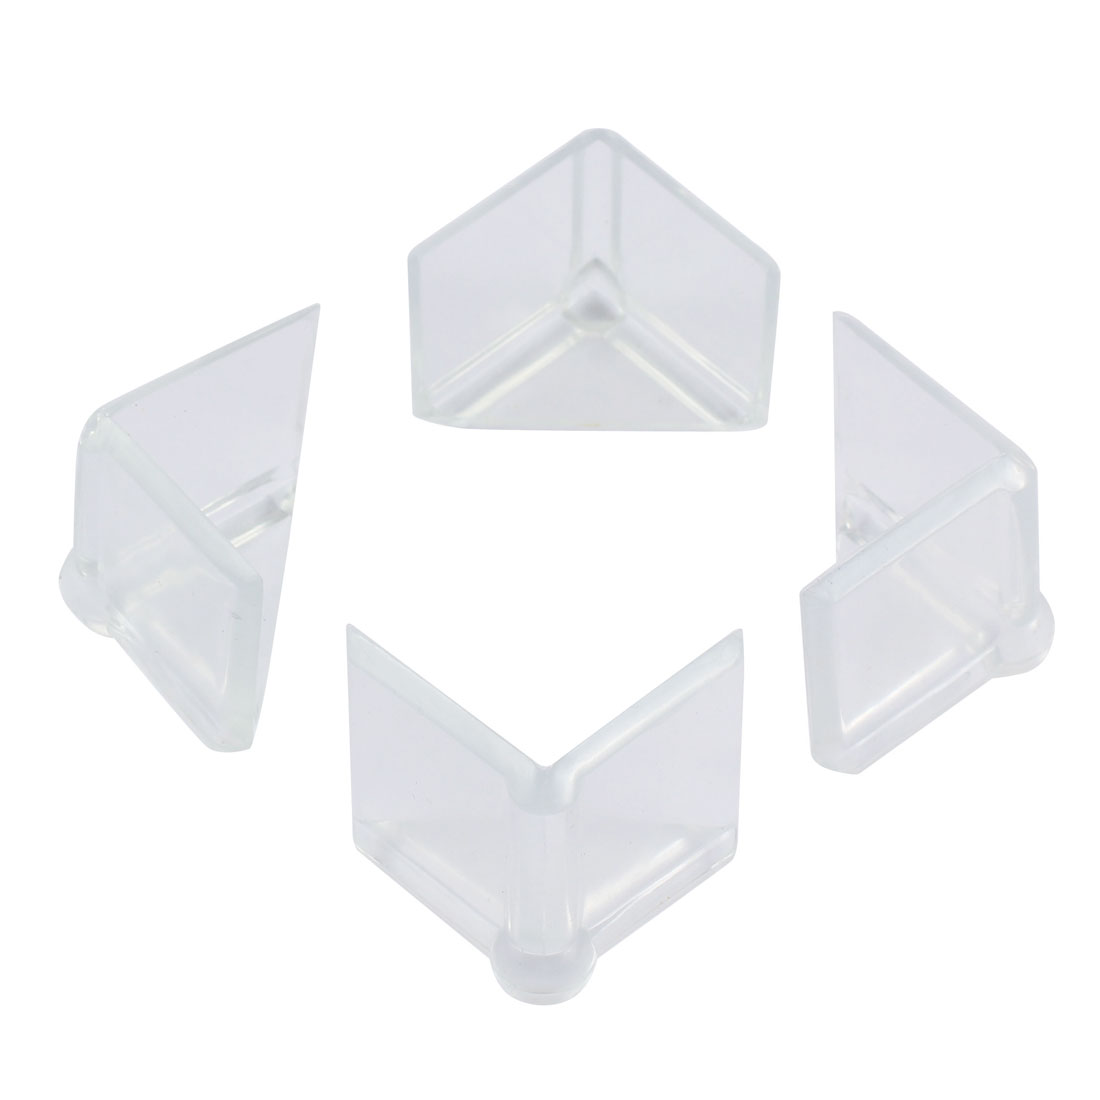 Table Desk Edge Corner Guard Protector Rubber Cushion Pad Mat Clear 4 Pcs